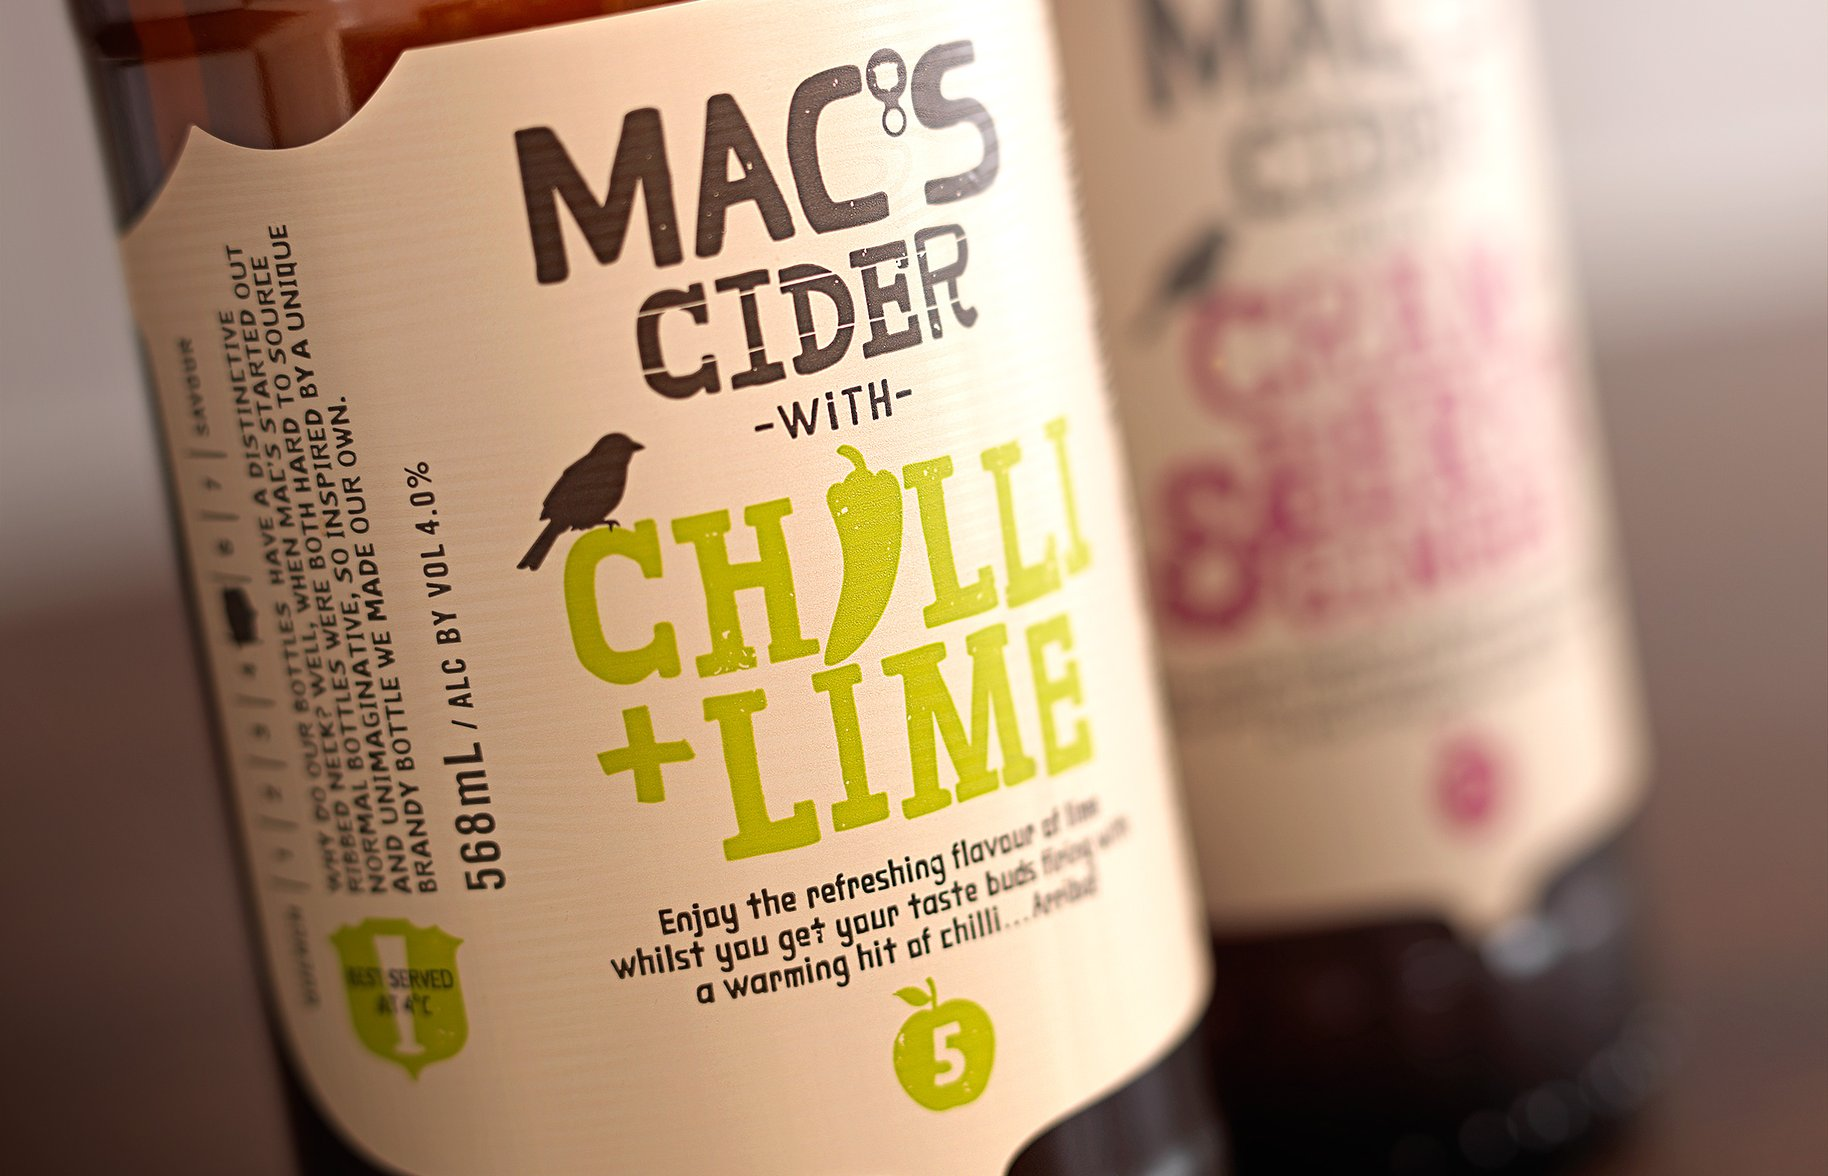 Macs Beer cider detail photography